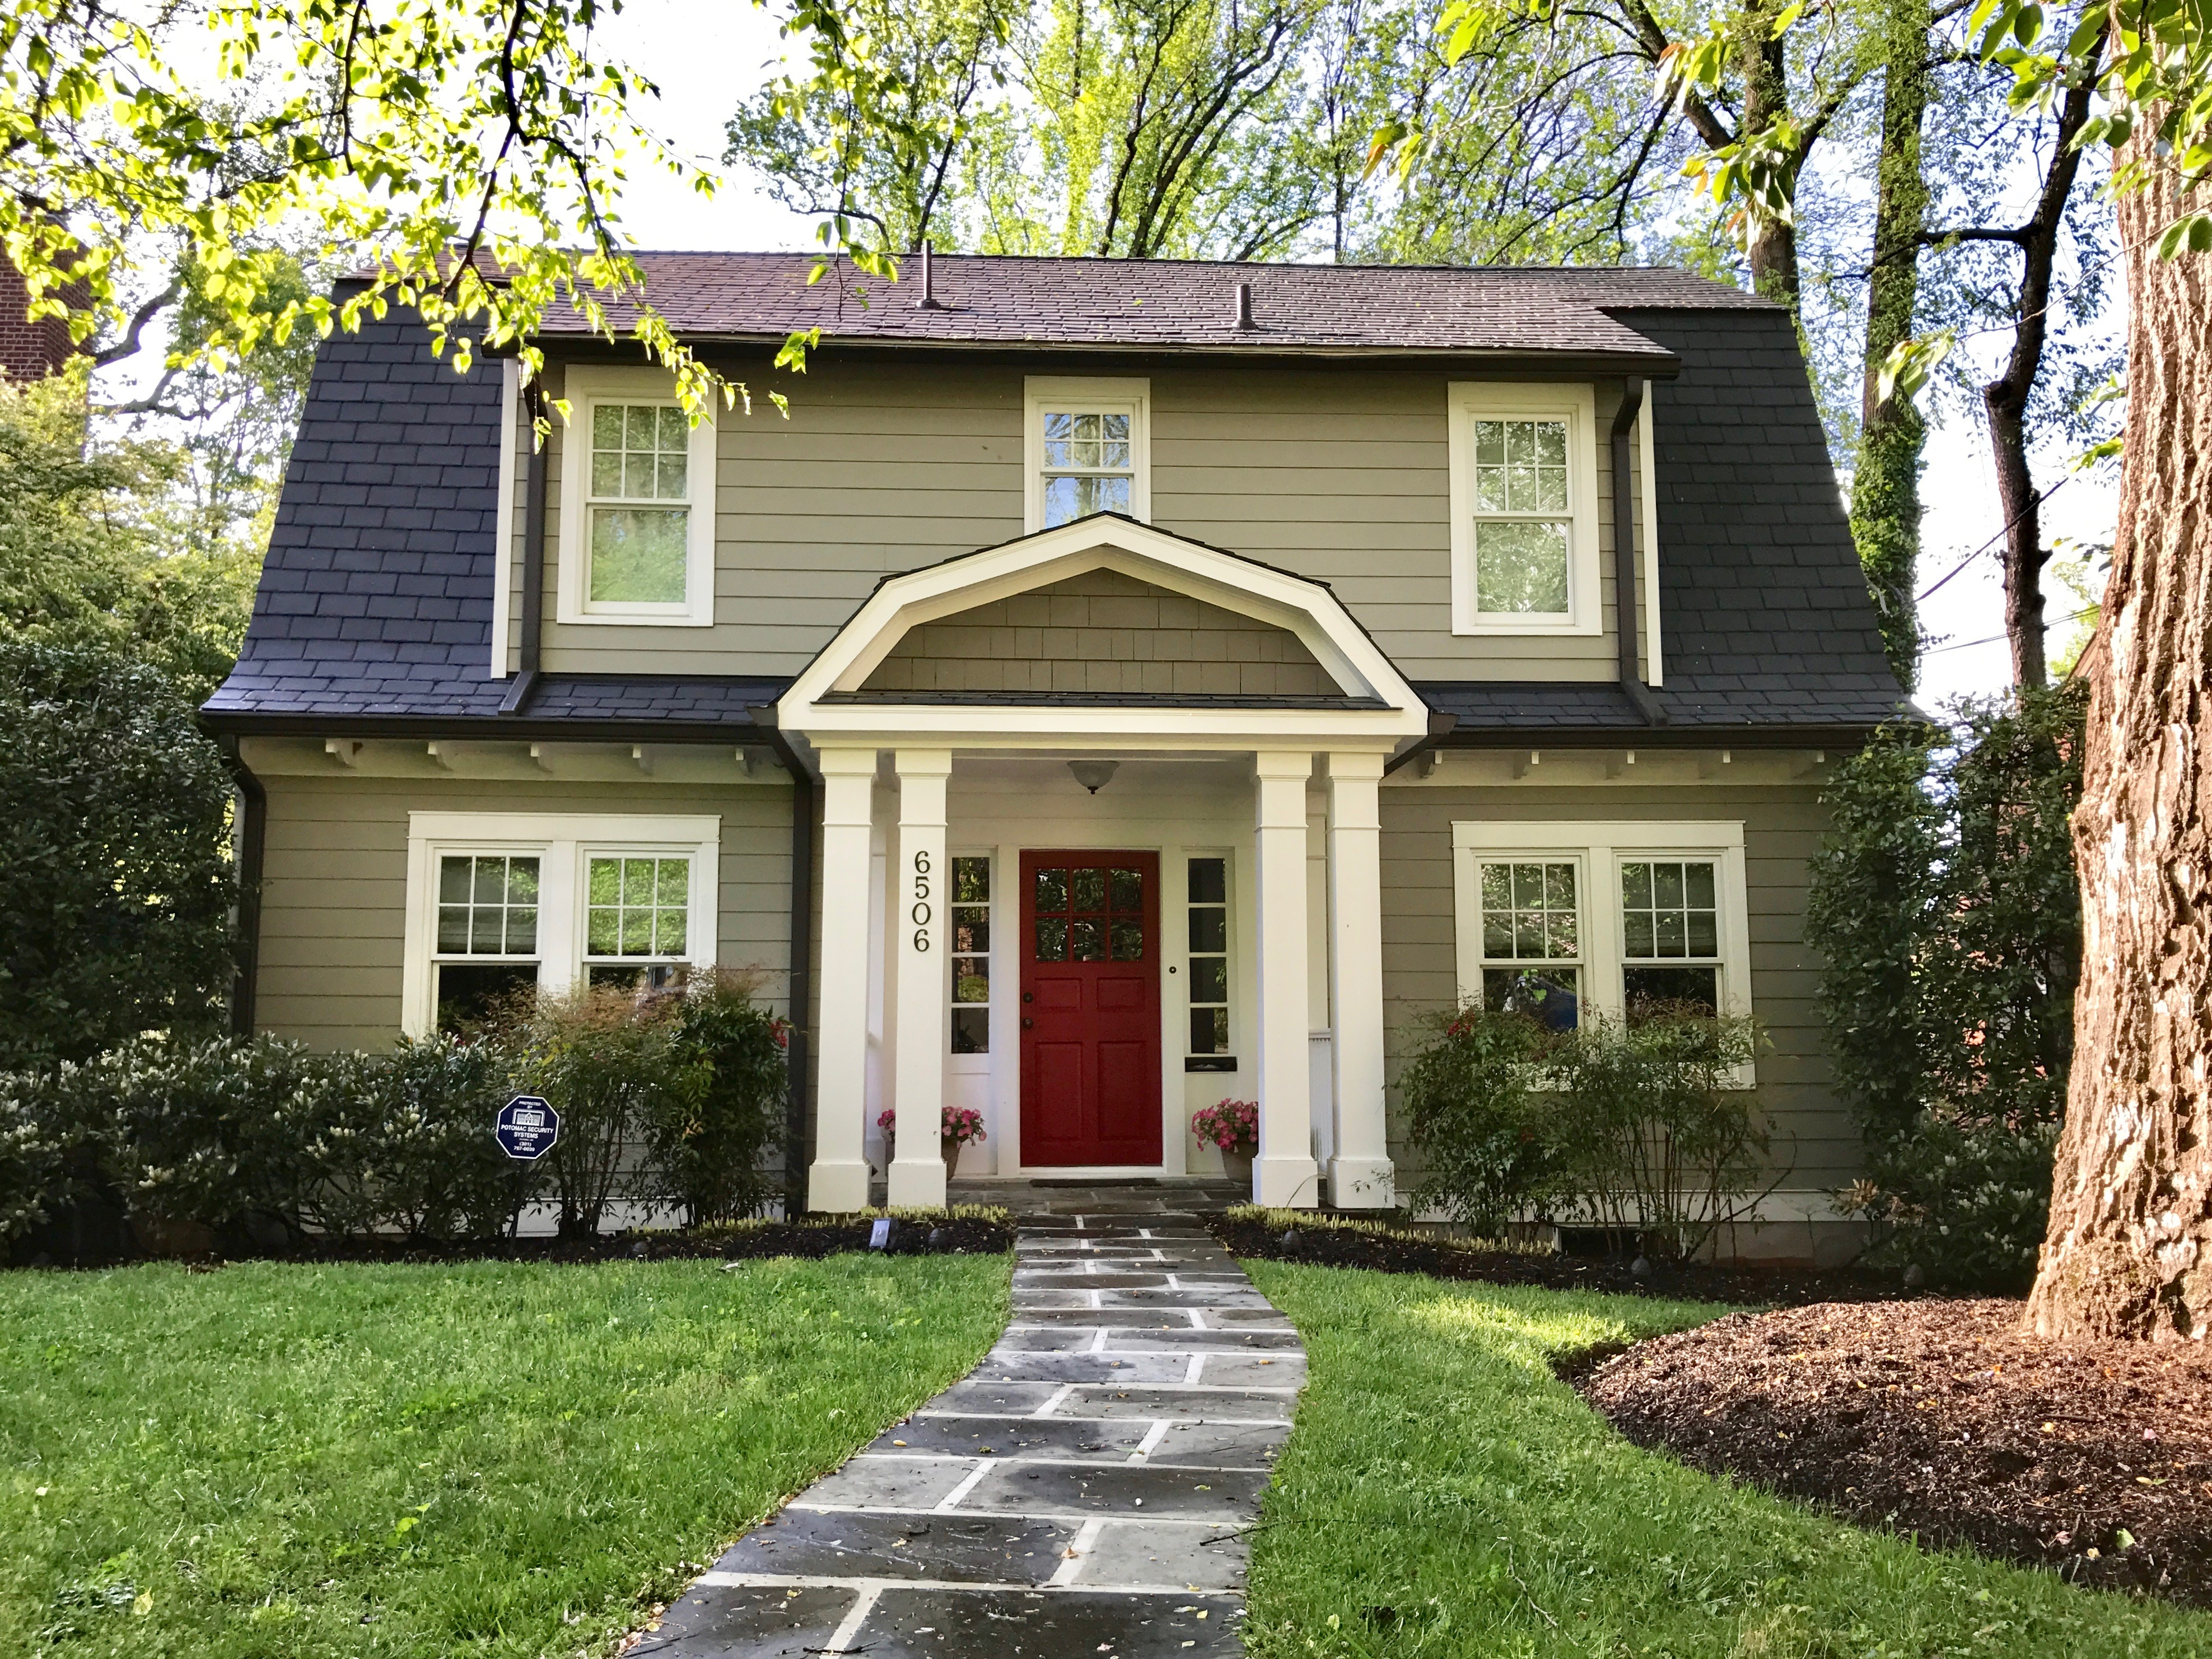 Sears houses in DC – DC Real Estate and House History